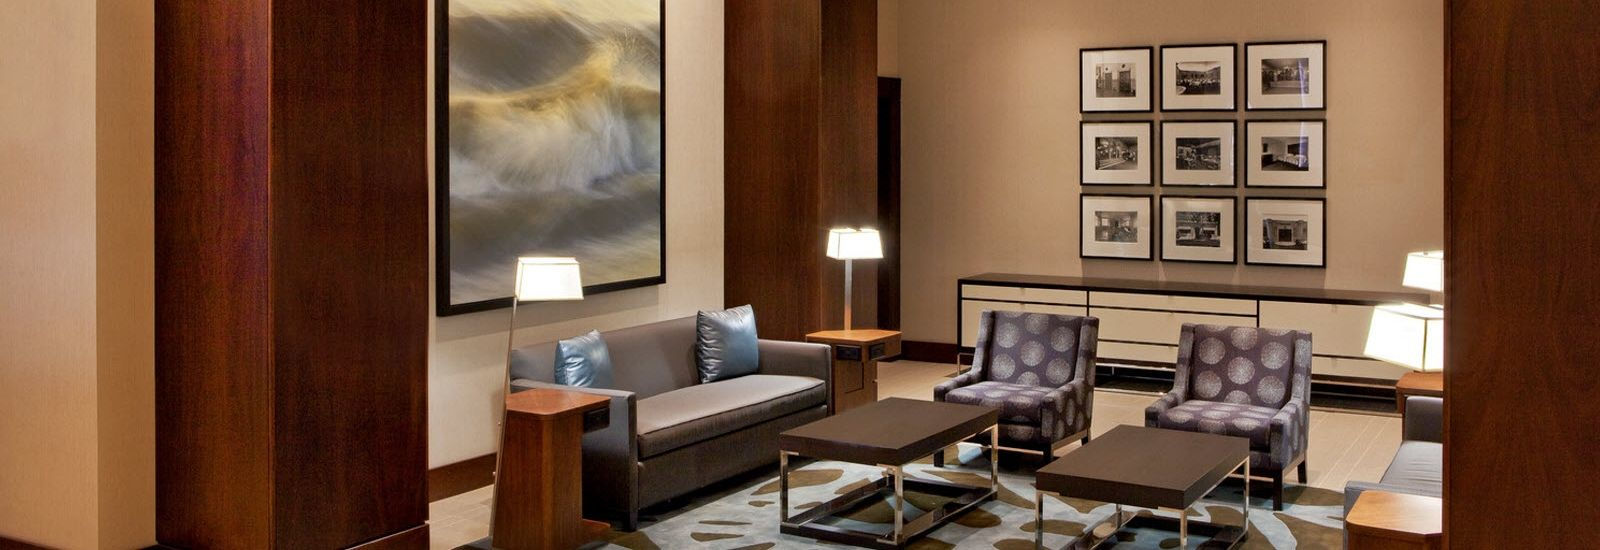 The Westin Portland Harborview Hotel - Business Center